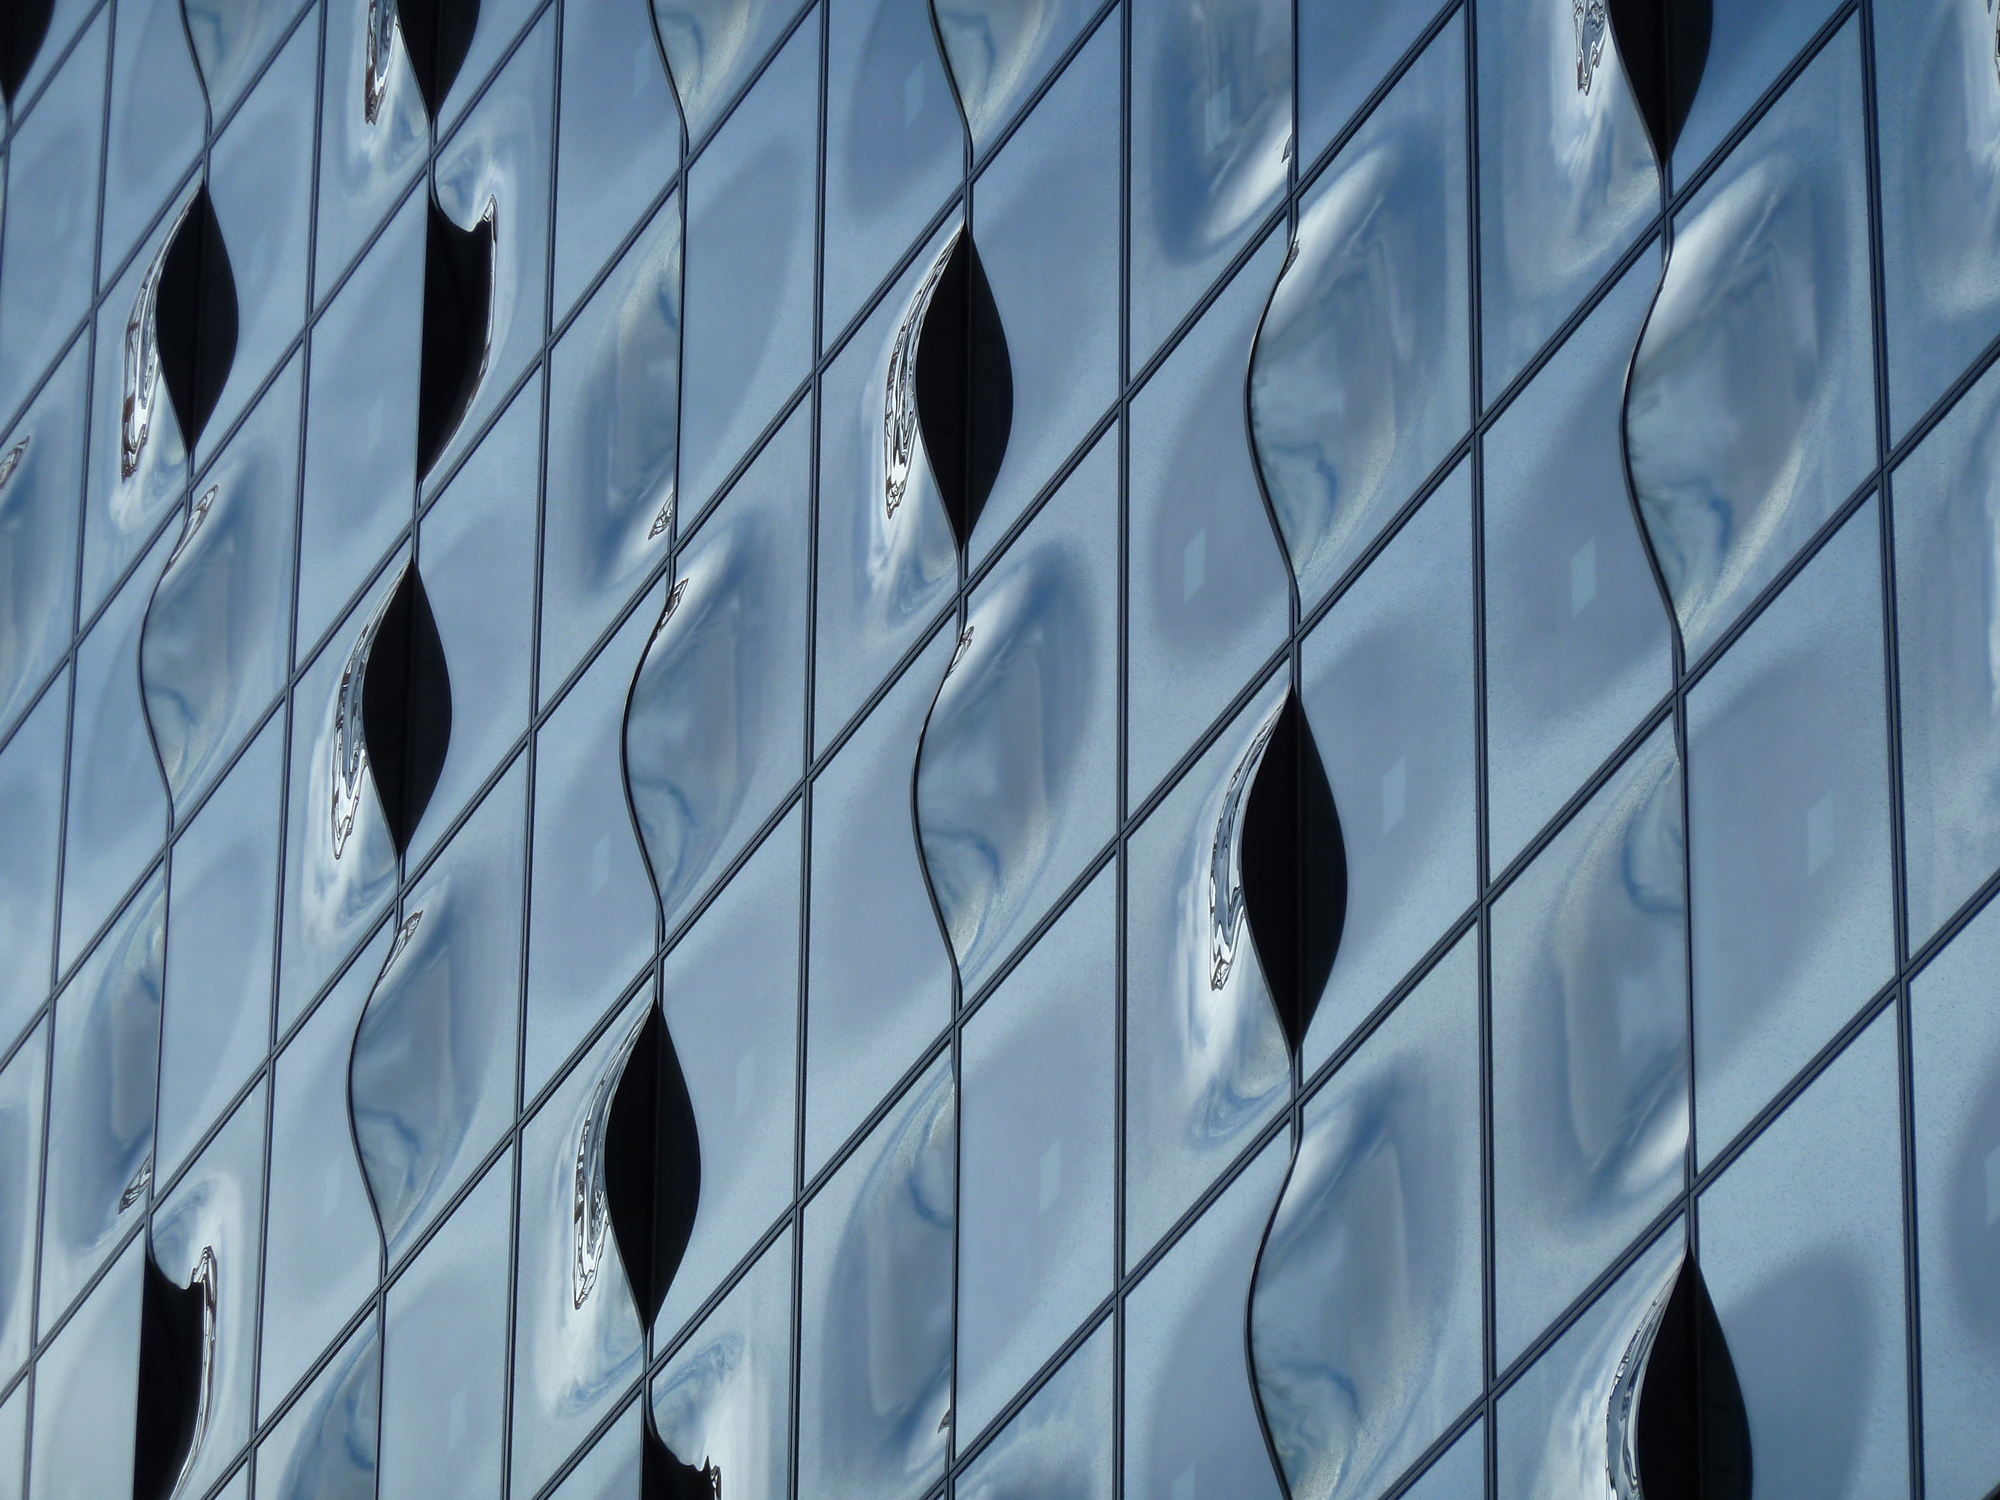 Curved glass, Elbphilharmonie by Herzog & de Meuron